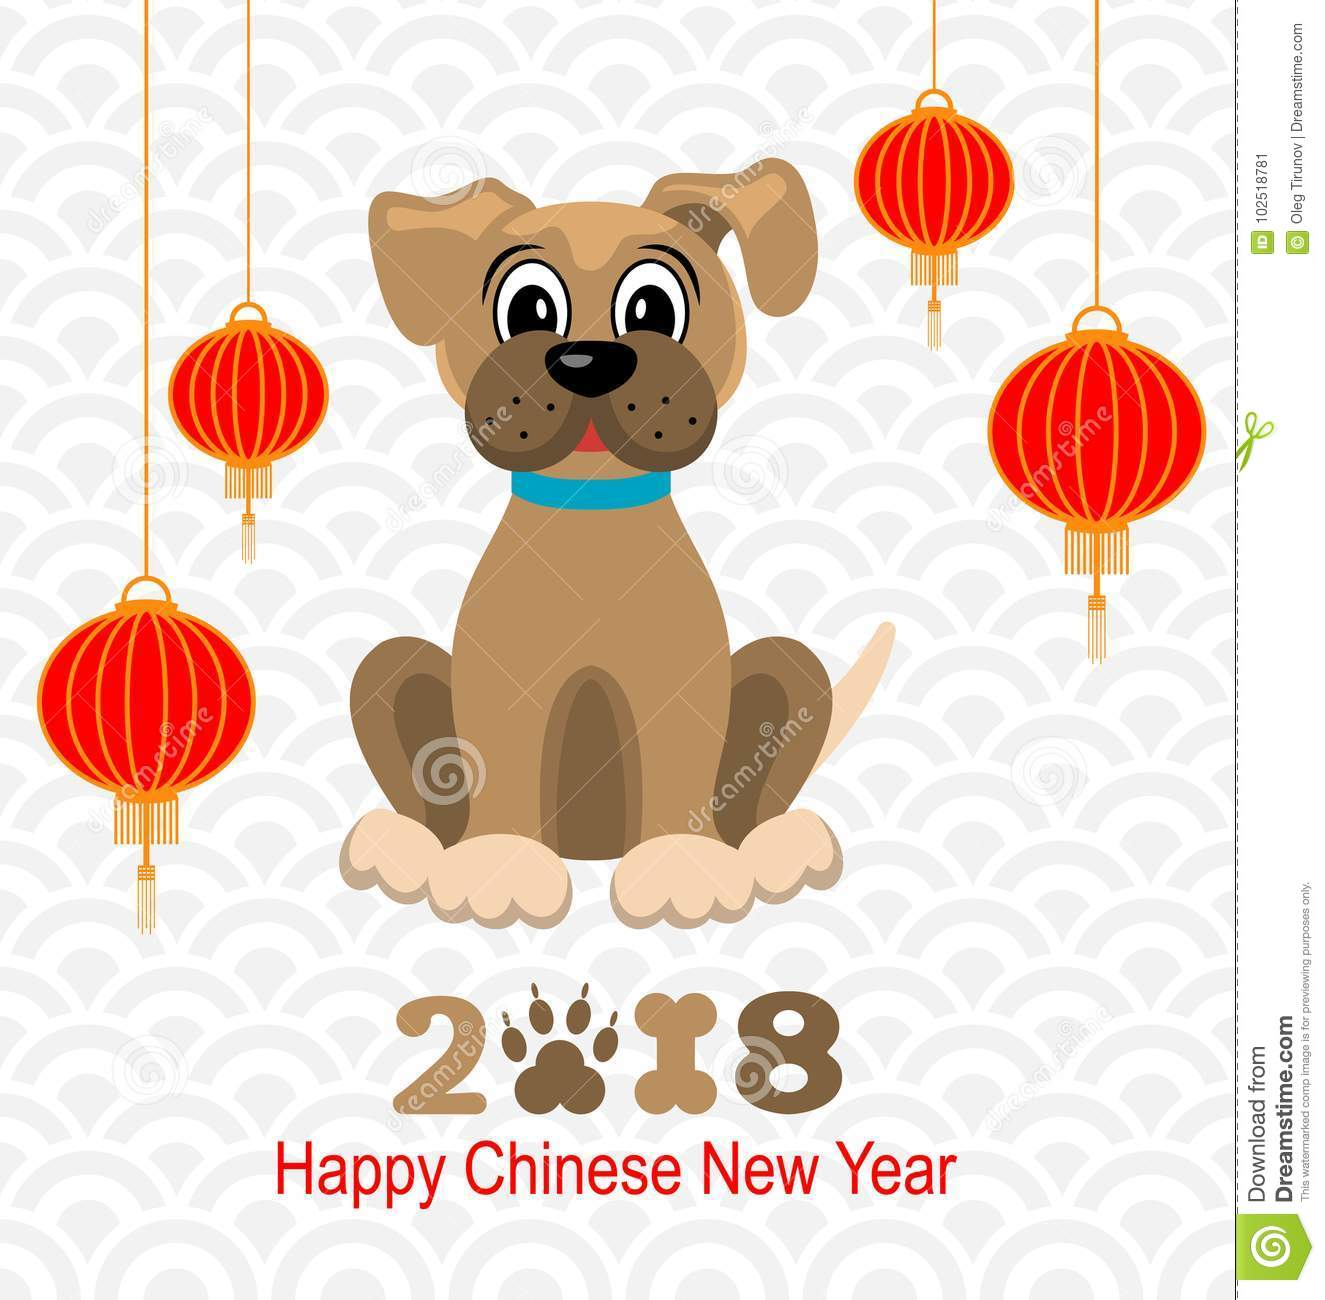 2018 Happy Chinese New Year of Dog, Lanterns and Doggy